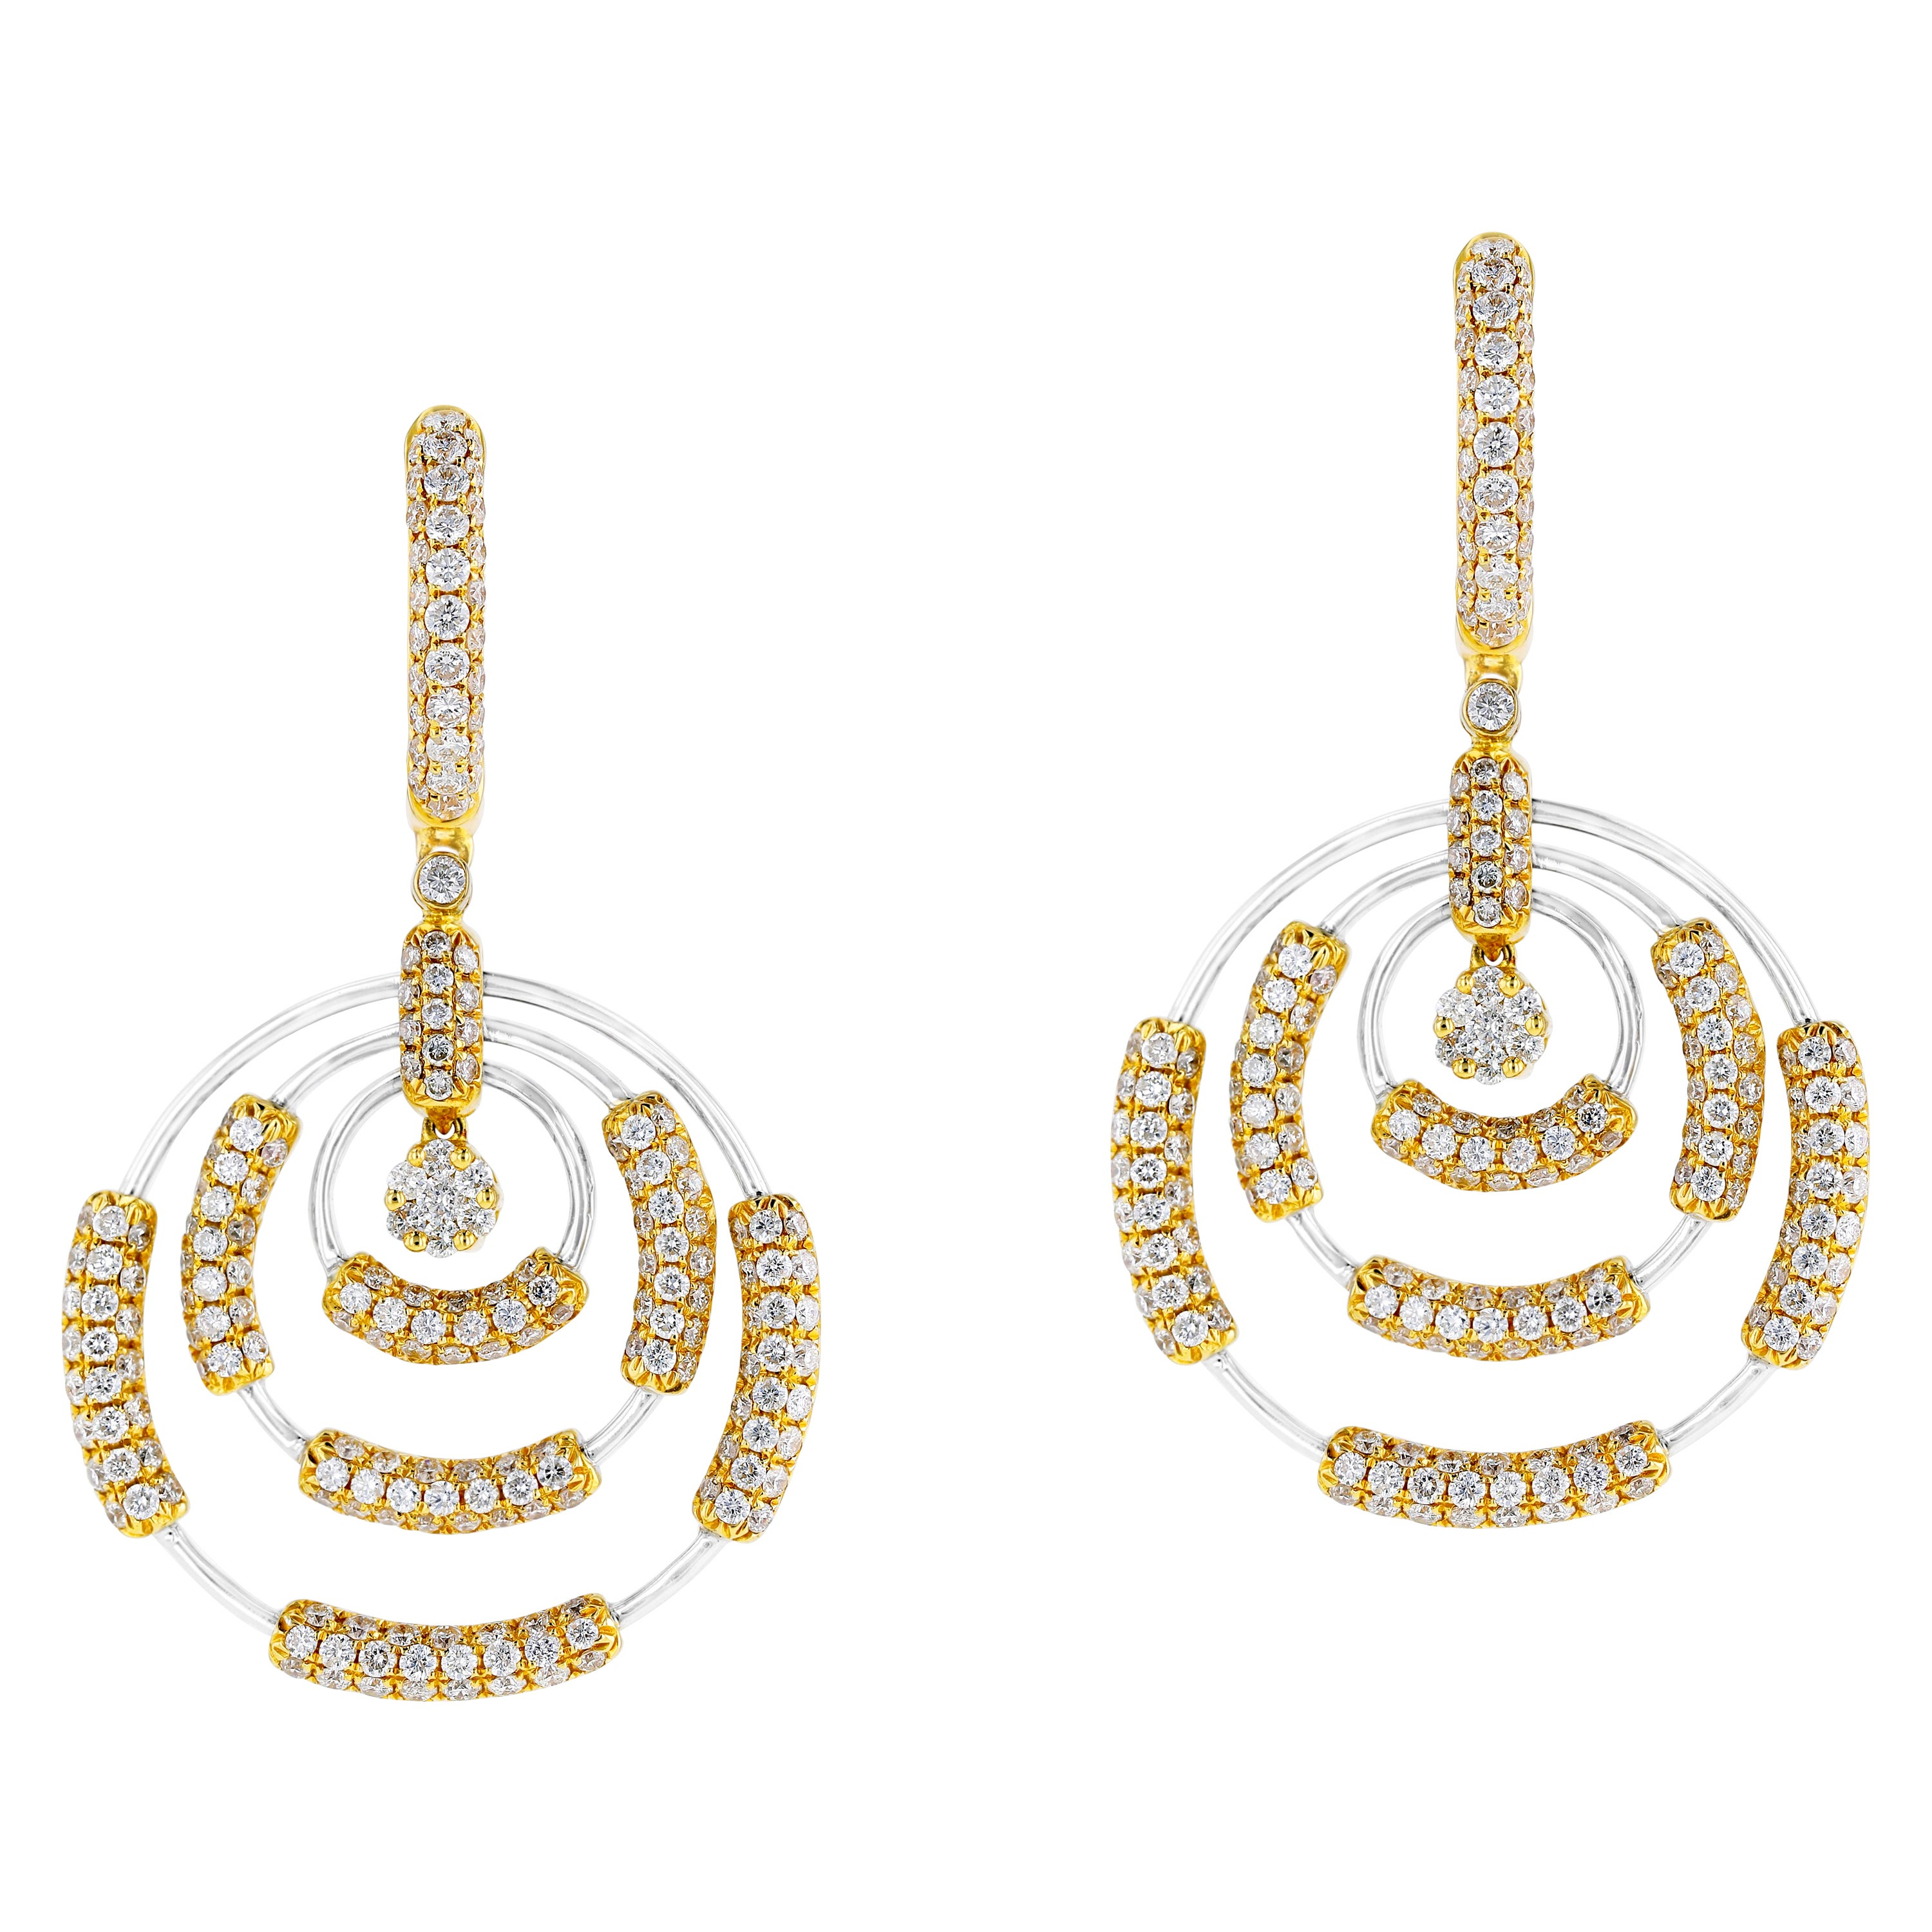 Amwaj Jewelry 18 Karat White Gold Earrings